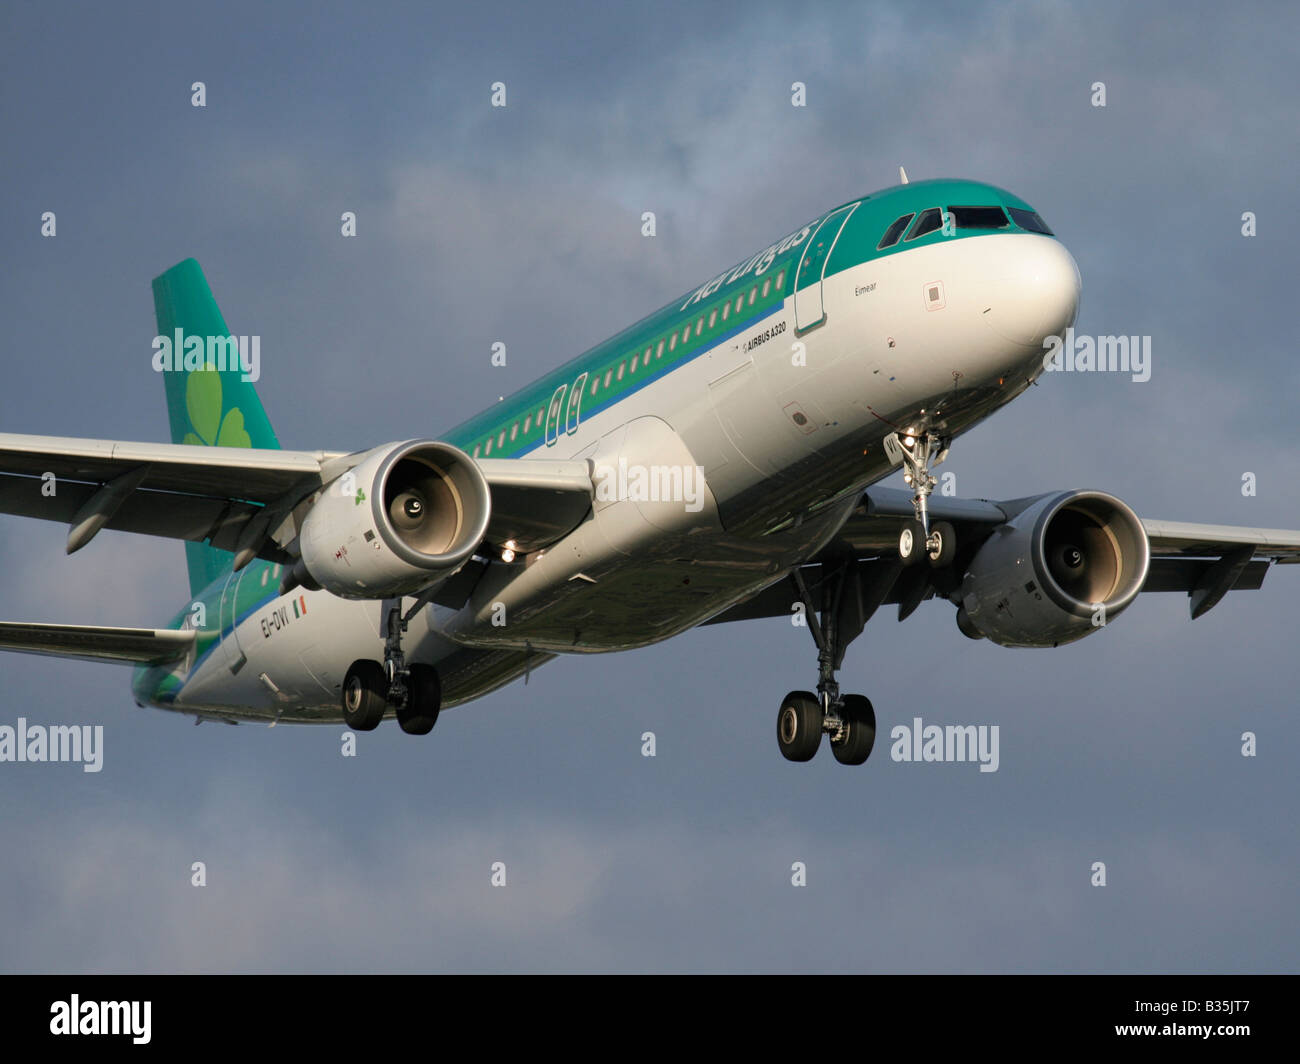 Aer Lingus Airbus A320 twin-engine commercial passenger jet plane on approach. Closeup front view. - Stock Image